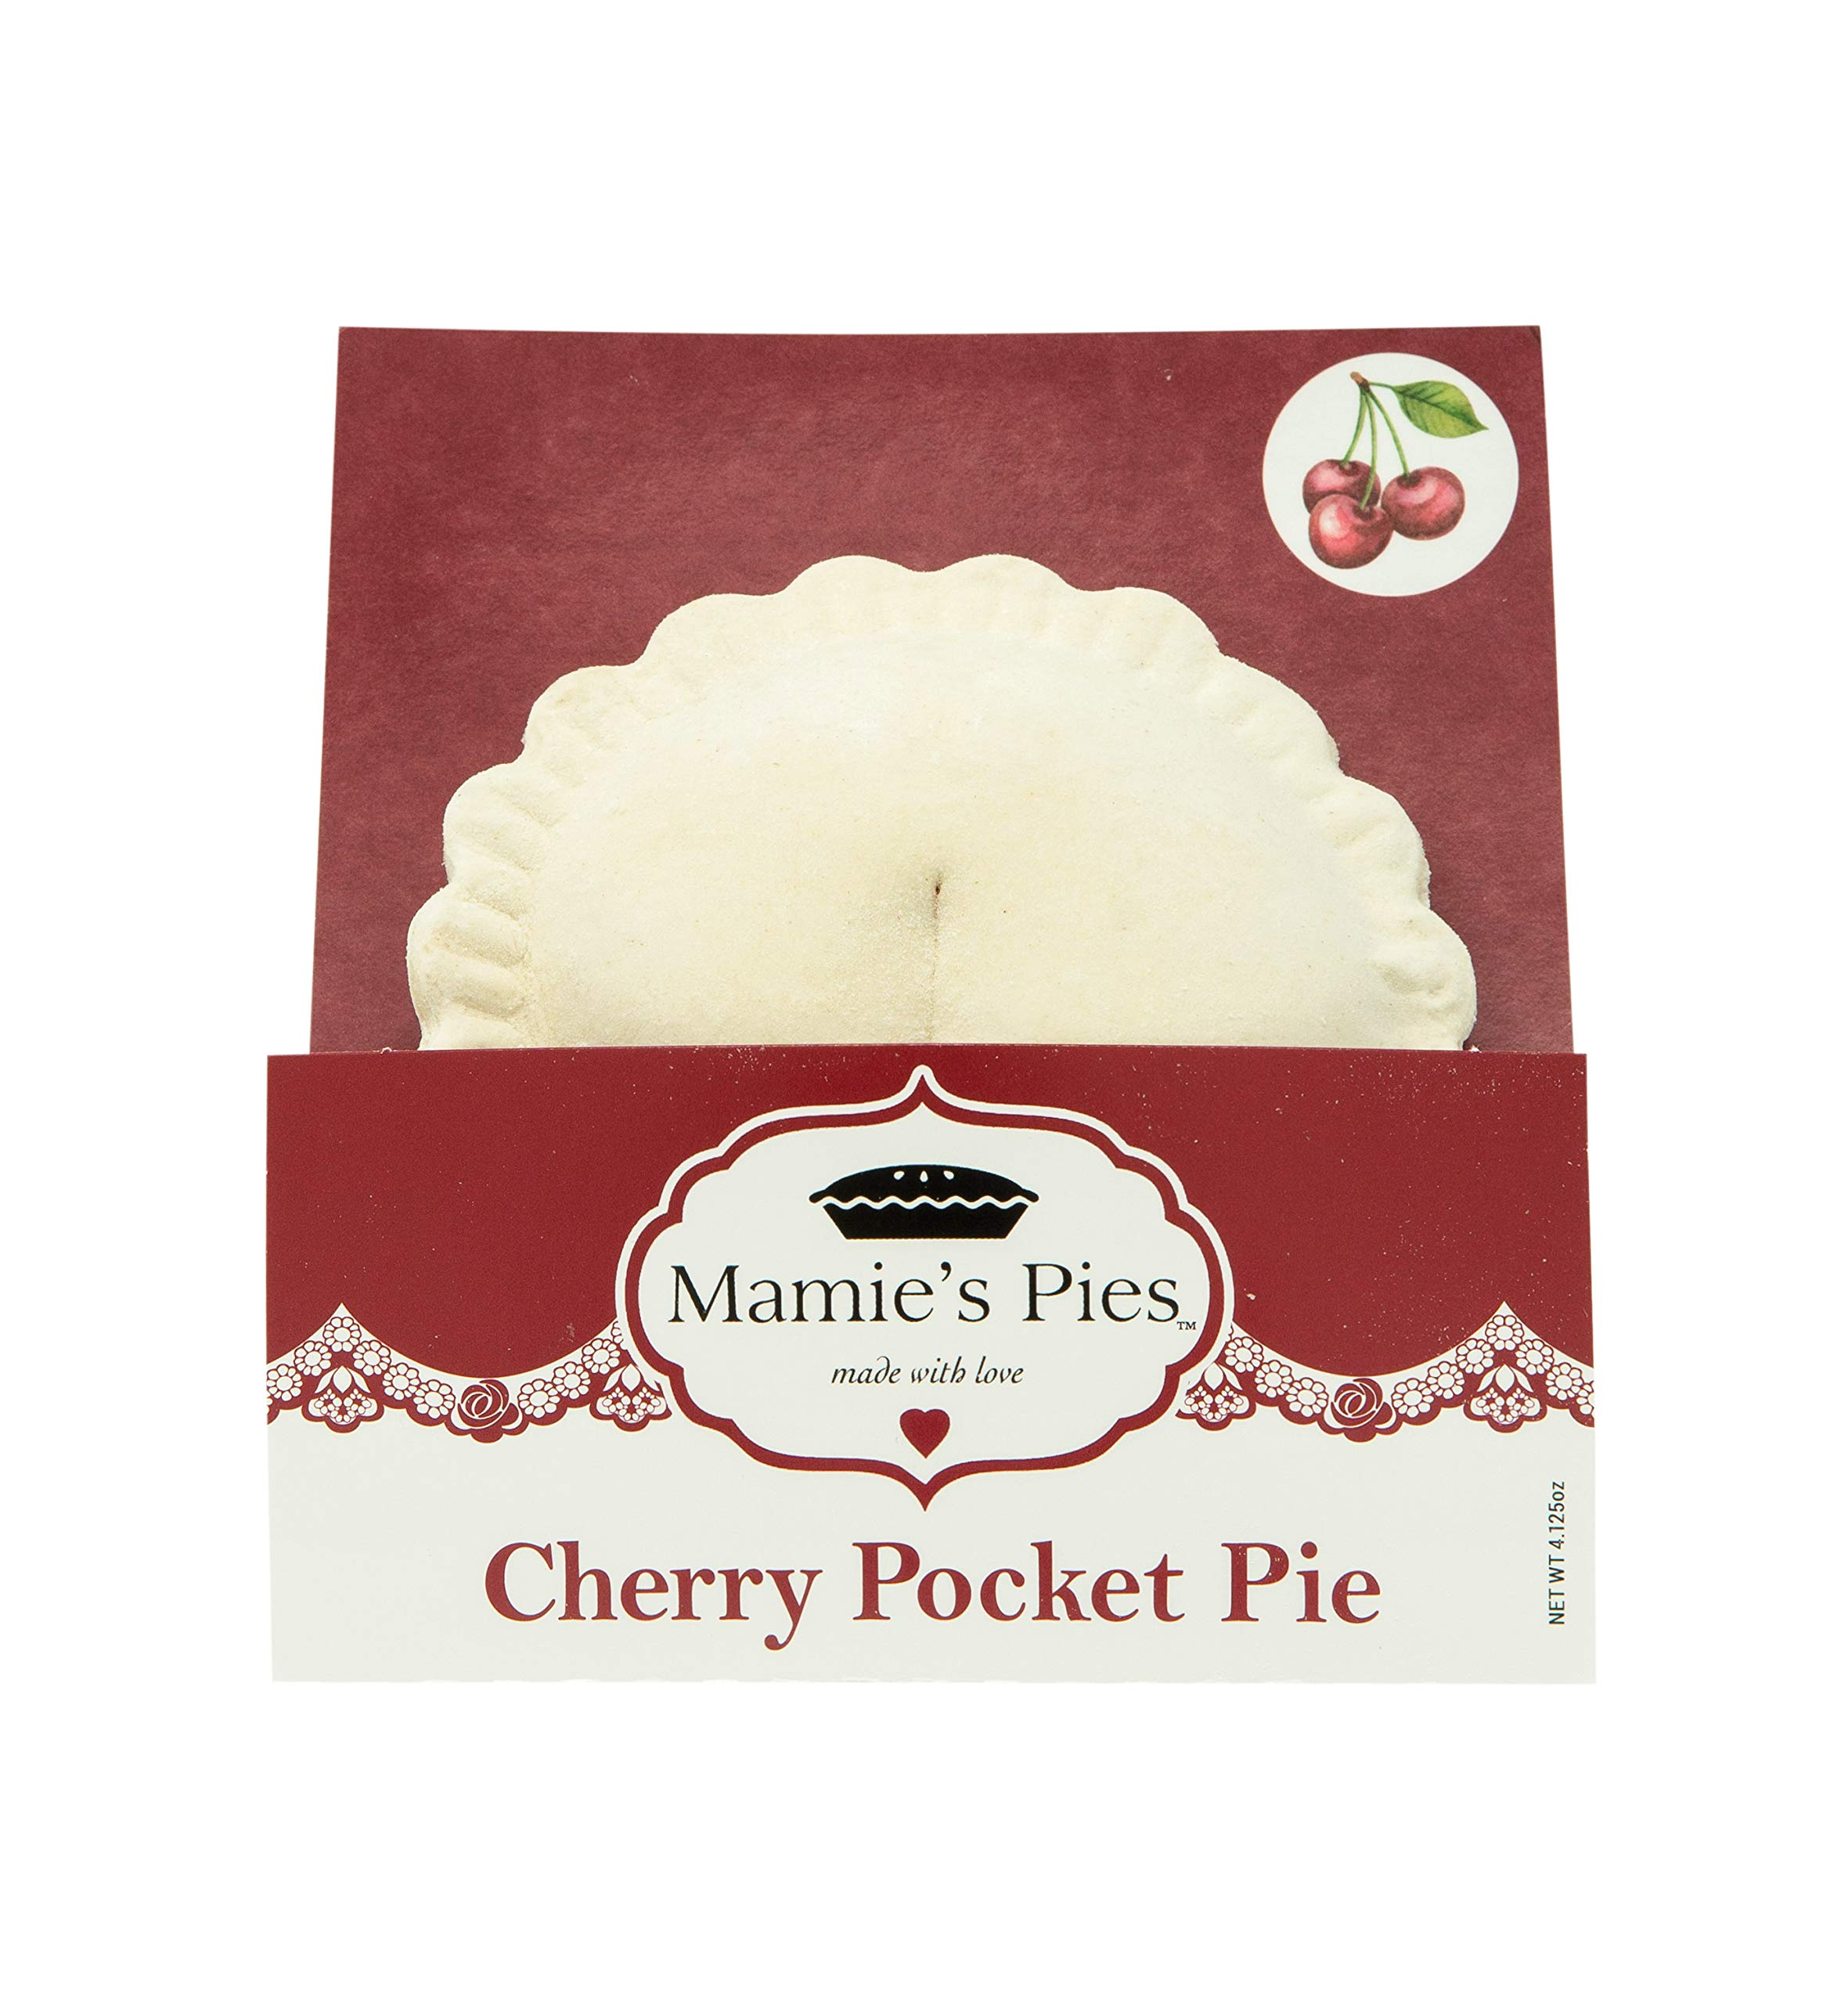 Mamie's 12 Pack Melt-in-Your-Mouth Single Serving Cherry Pies, Individually Packaged 4.5oz Pocket Pies, Preservative Free, Shipped Frozen and Ready to Bake, Made in USA. by Mamie's Pies (Image #1)